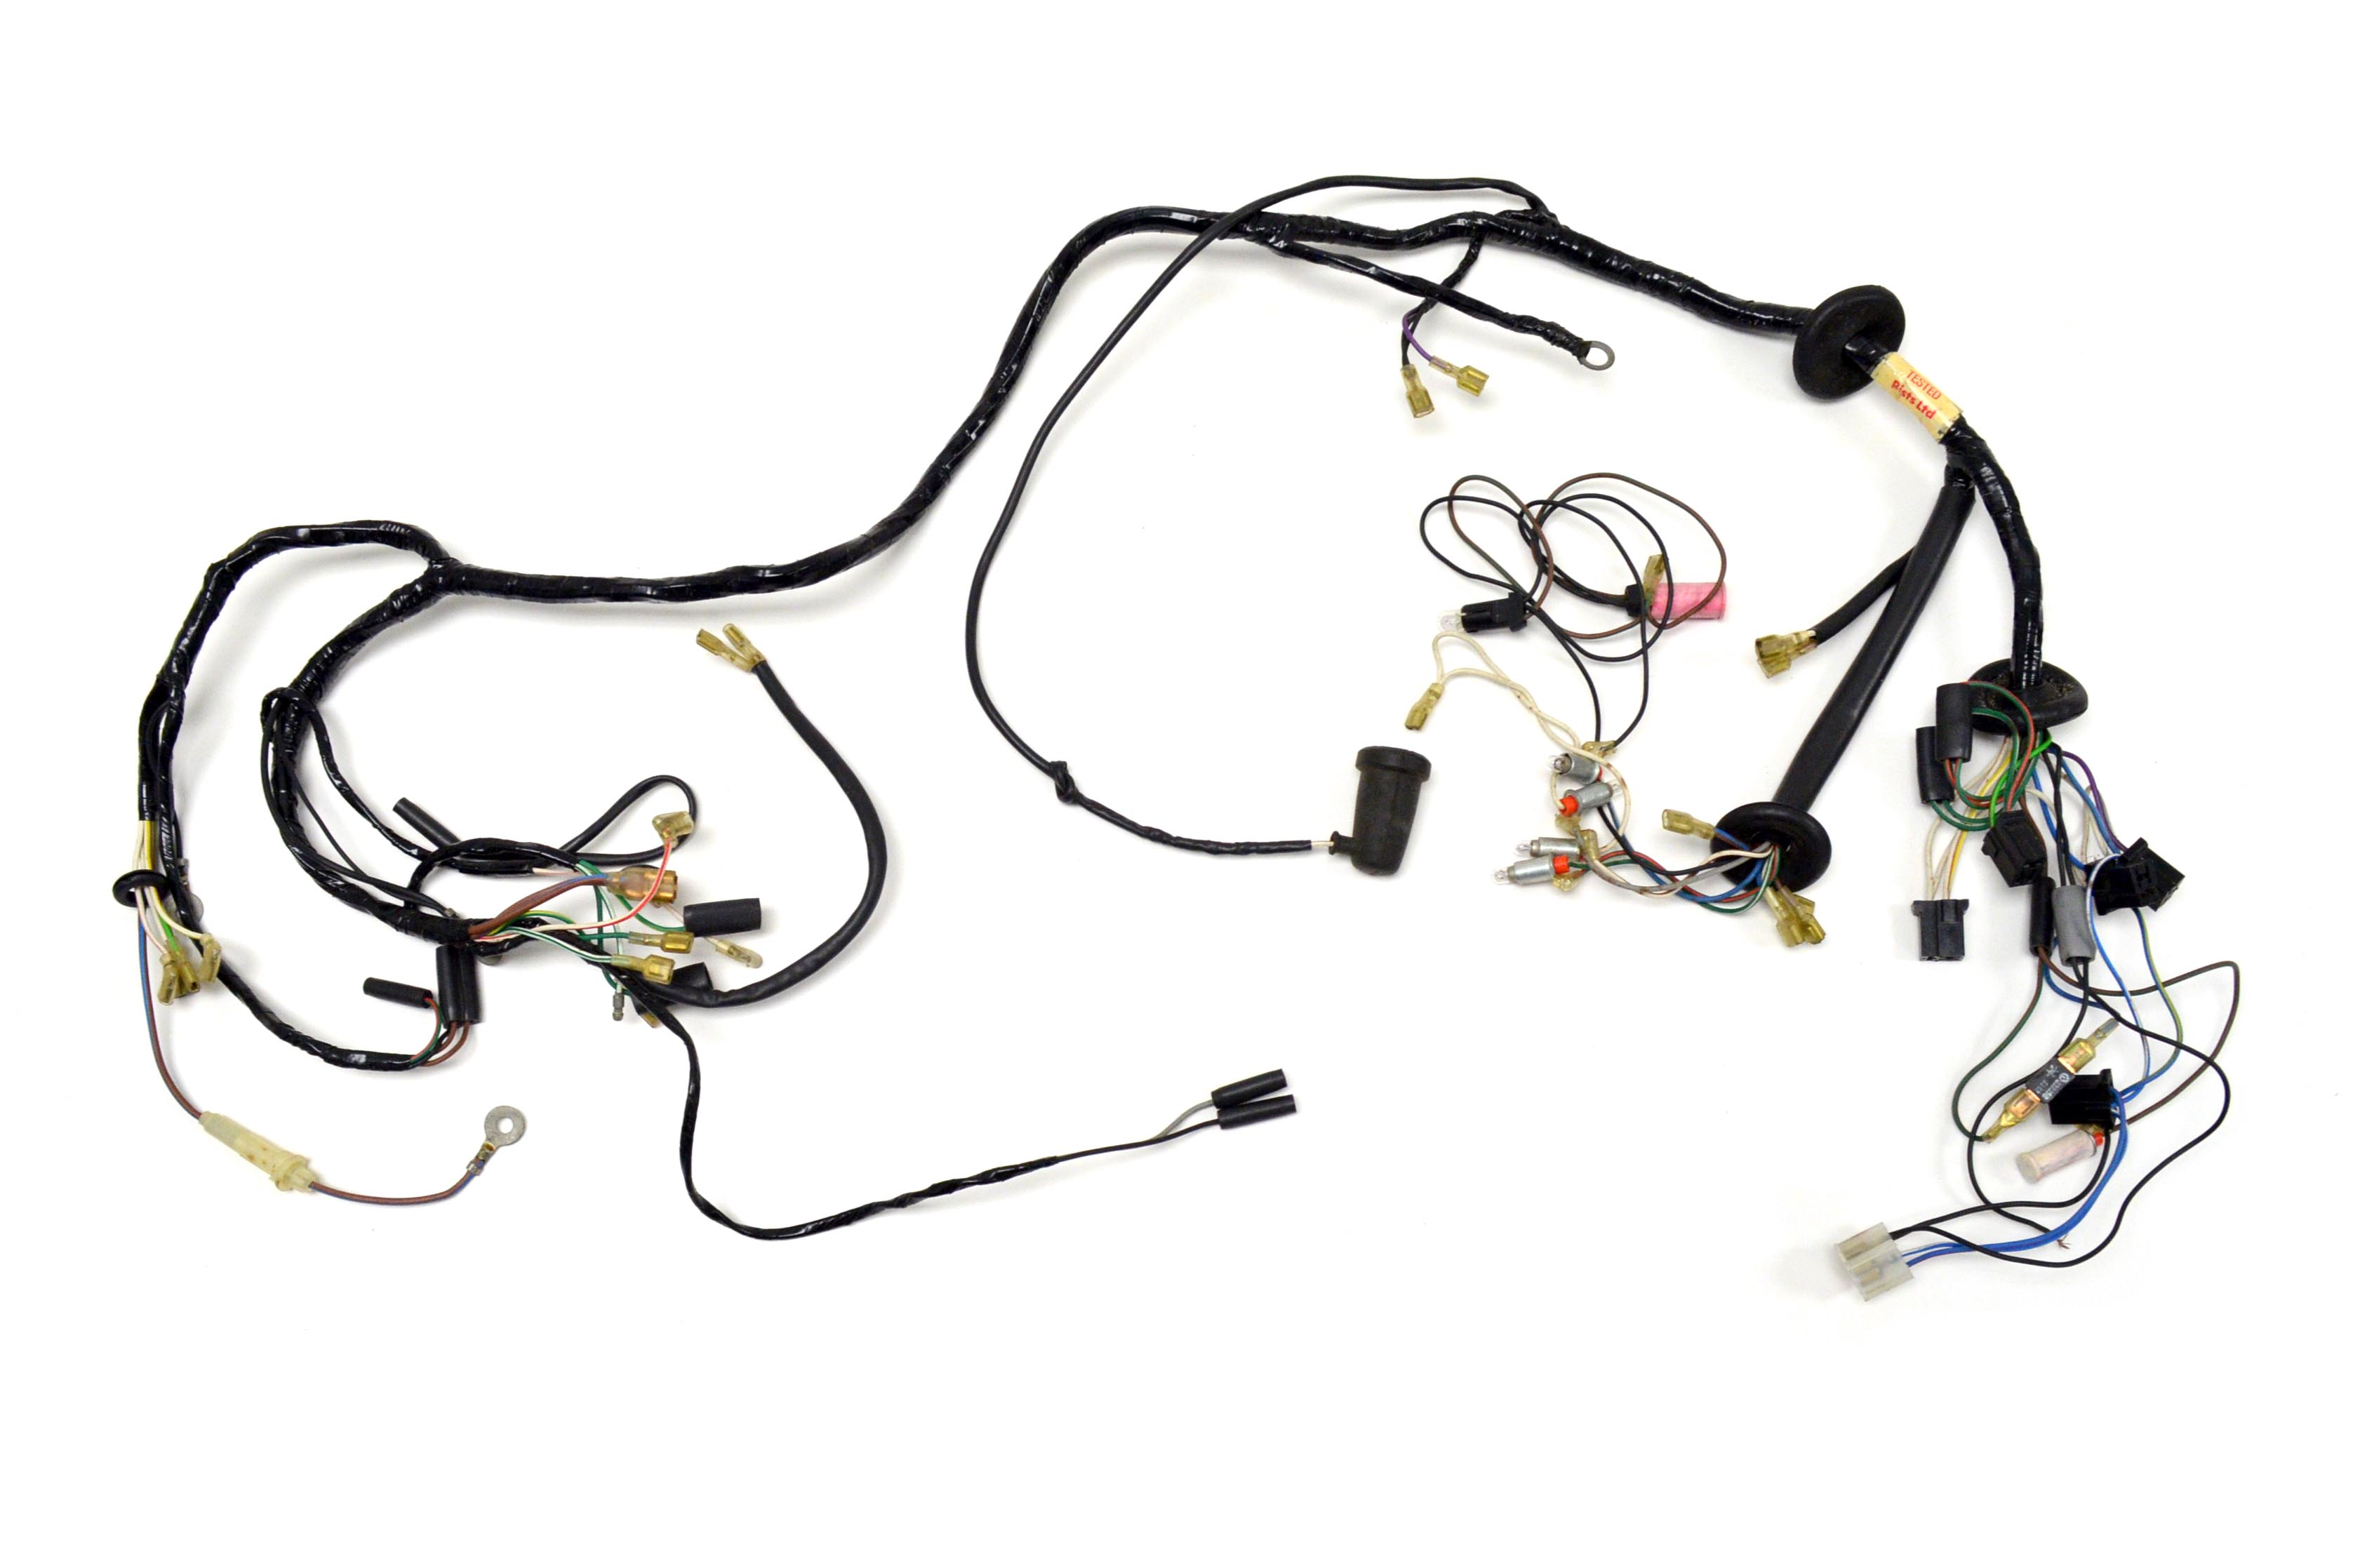 Triumph 82 T140 Tsx Factory Genuine Lucas Wiring Harness 60